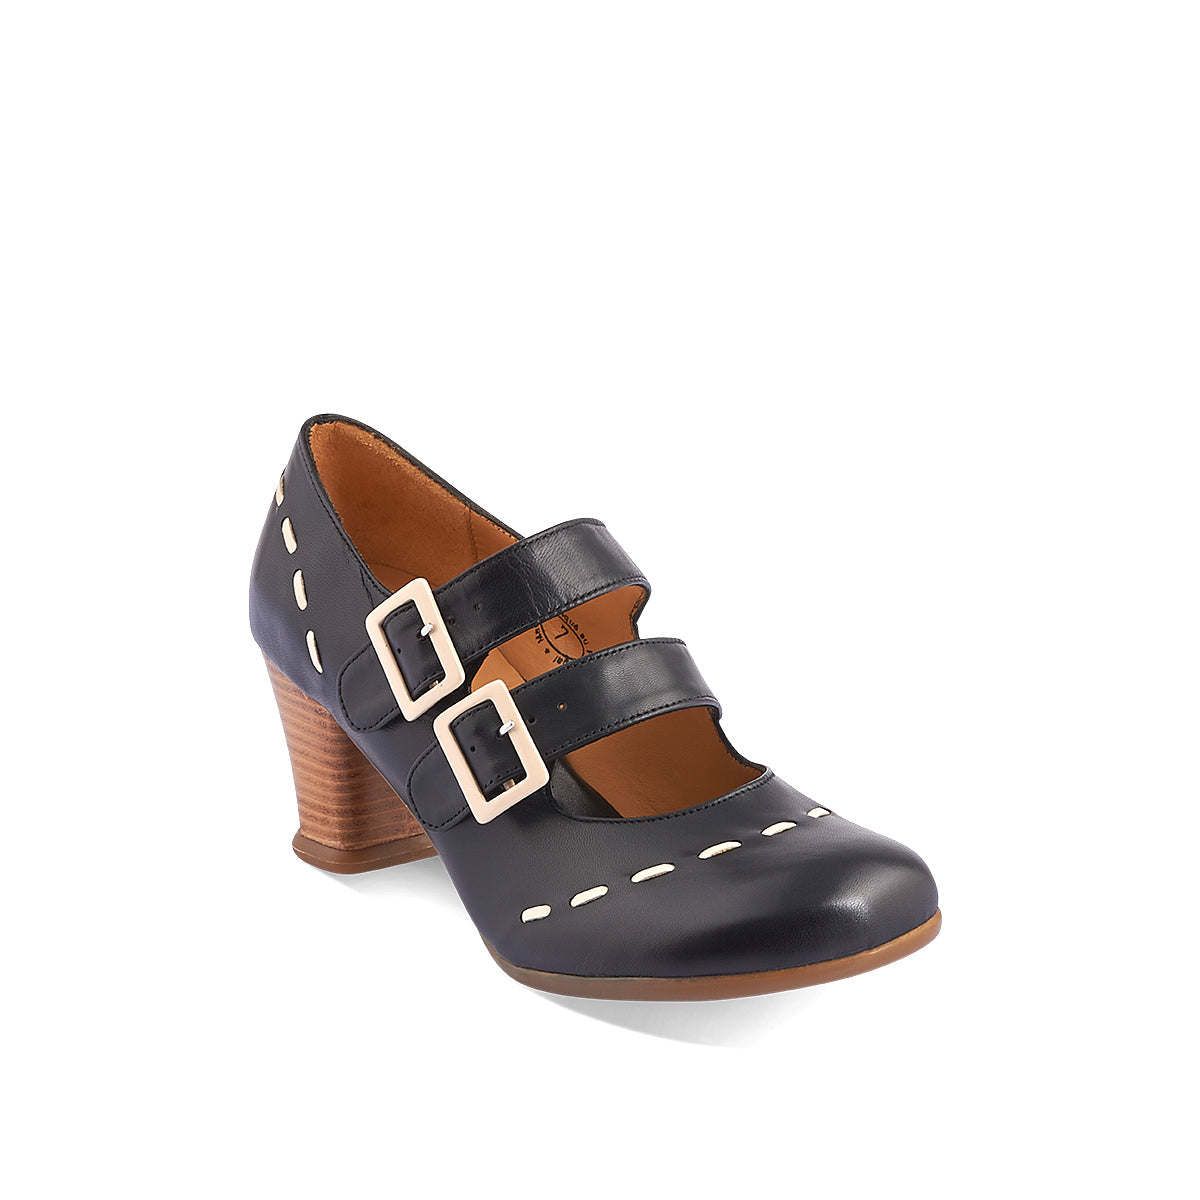 The latest addition to John Fluevog's famed Operettas family, the Cavalieri features twin buckle straps and the accommodating toe shape we all know and love. The contrast stitching adds vintage appeal and the familiar block mid heel provides wonderful balance and stability underfoot.